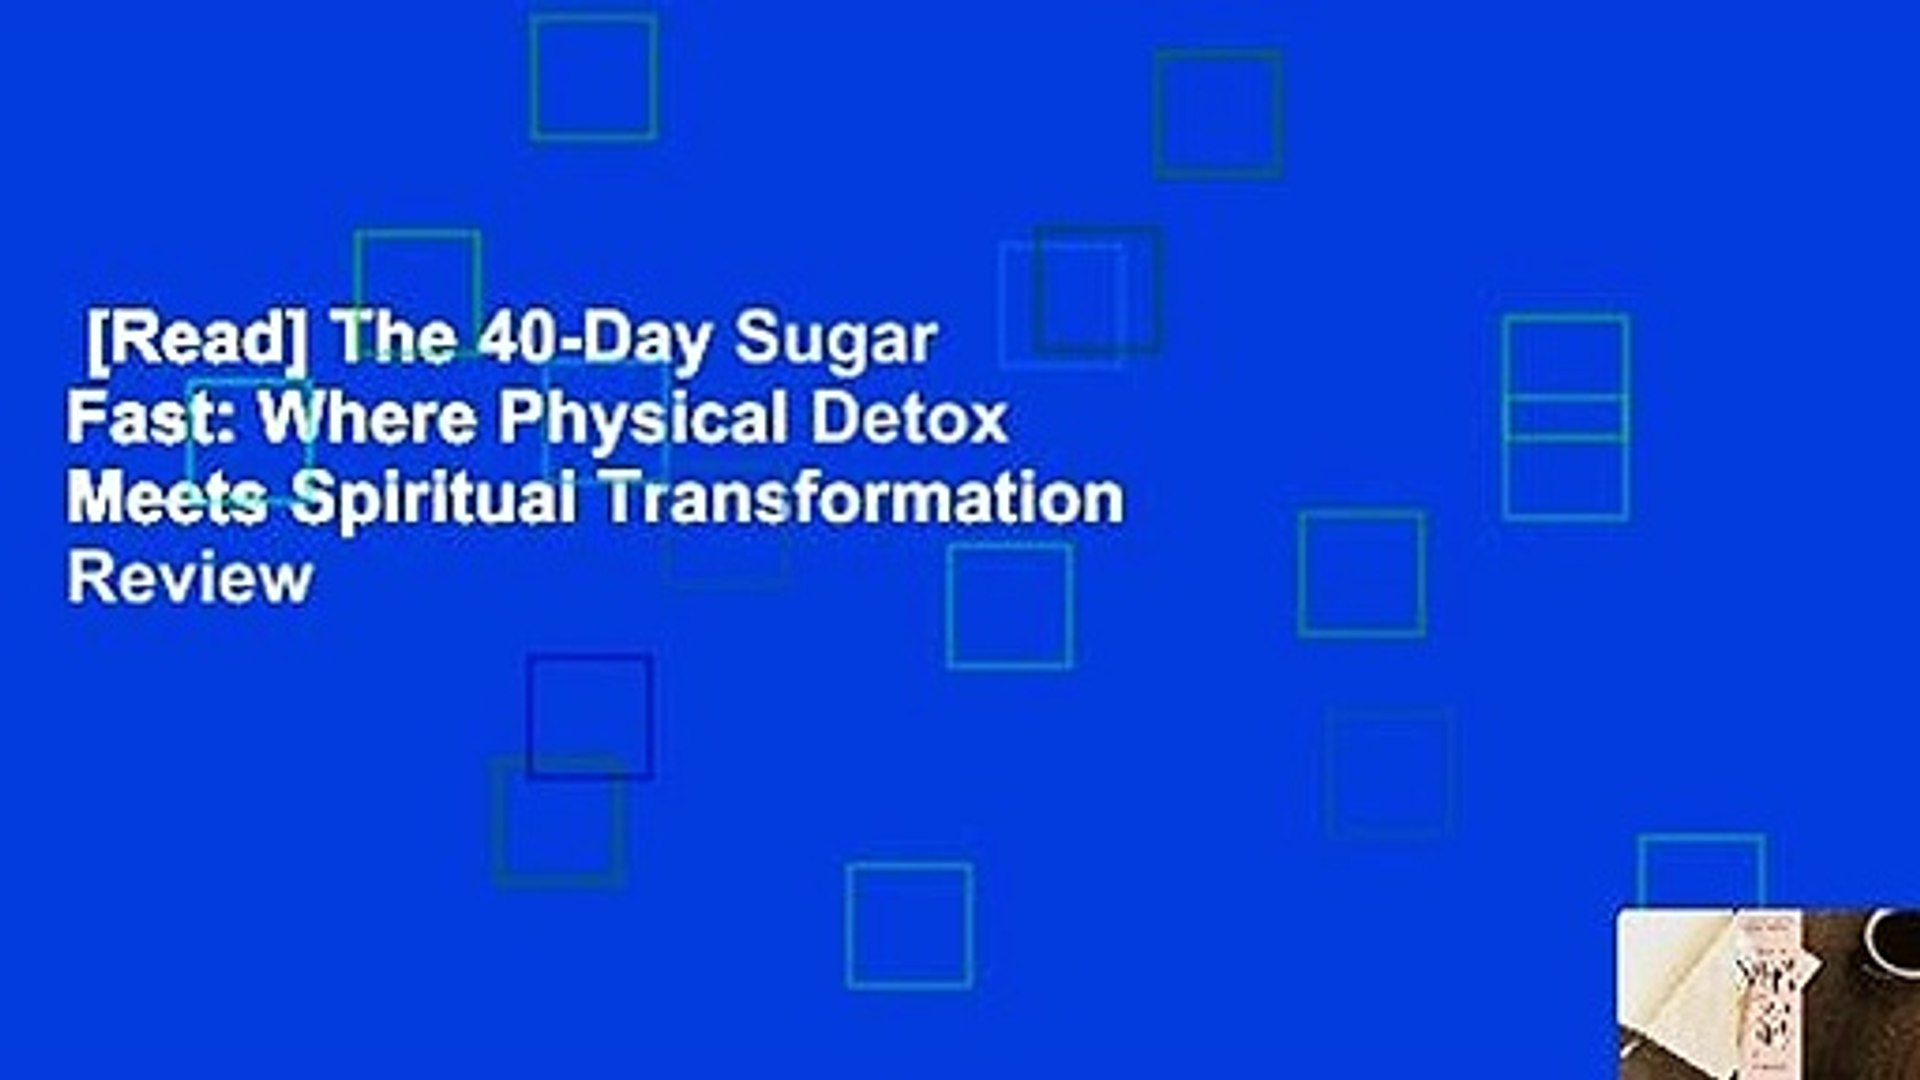 [Read] The 40-Day Sugar Fast: Where Physical Detox Meets Spiritual Transformation  Review